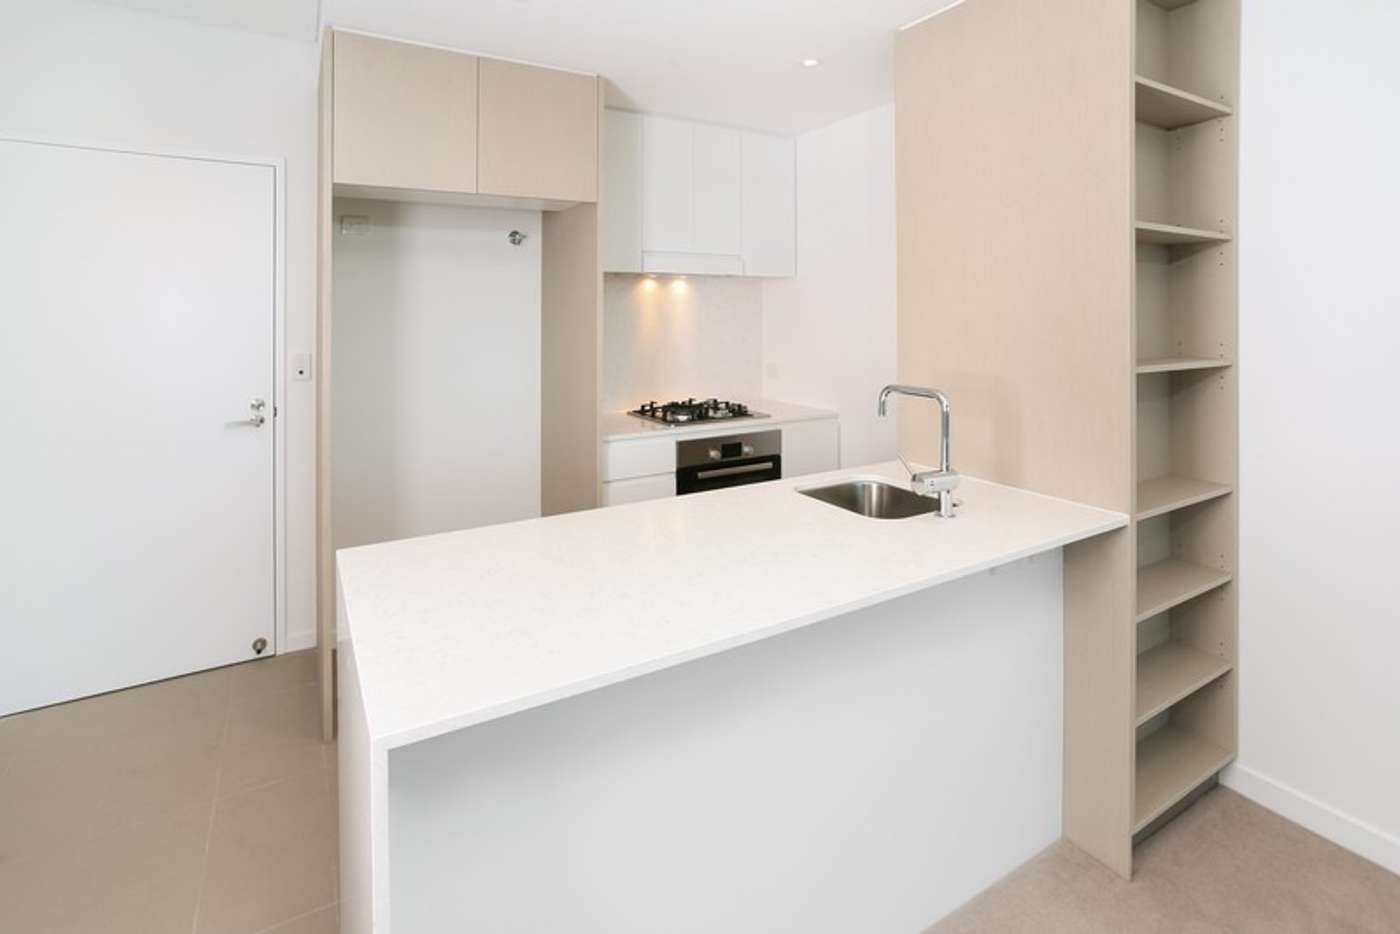 Fifth view of Homely apartment listing, 0607/320 Macarthur Avenue, Hamilton QLD 4007